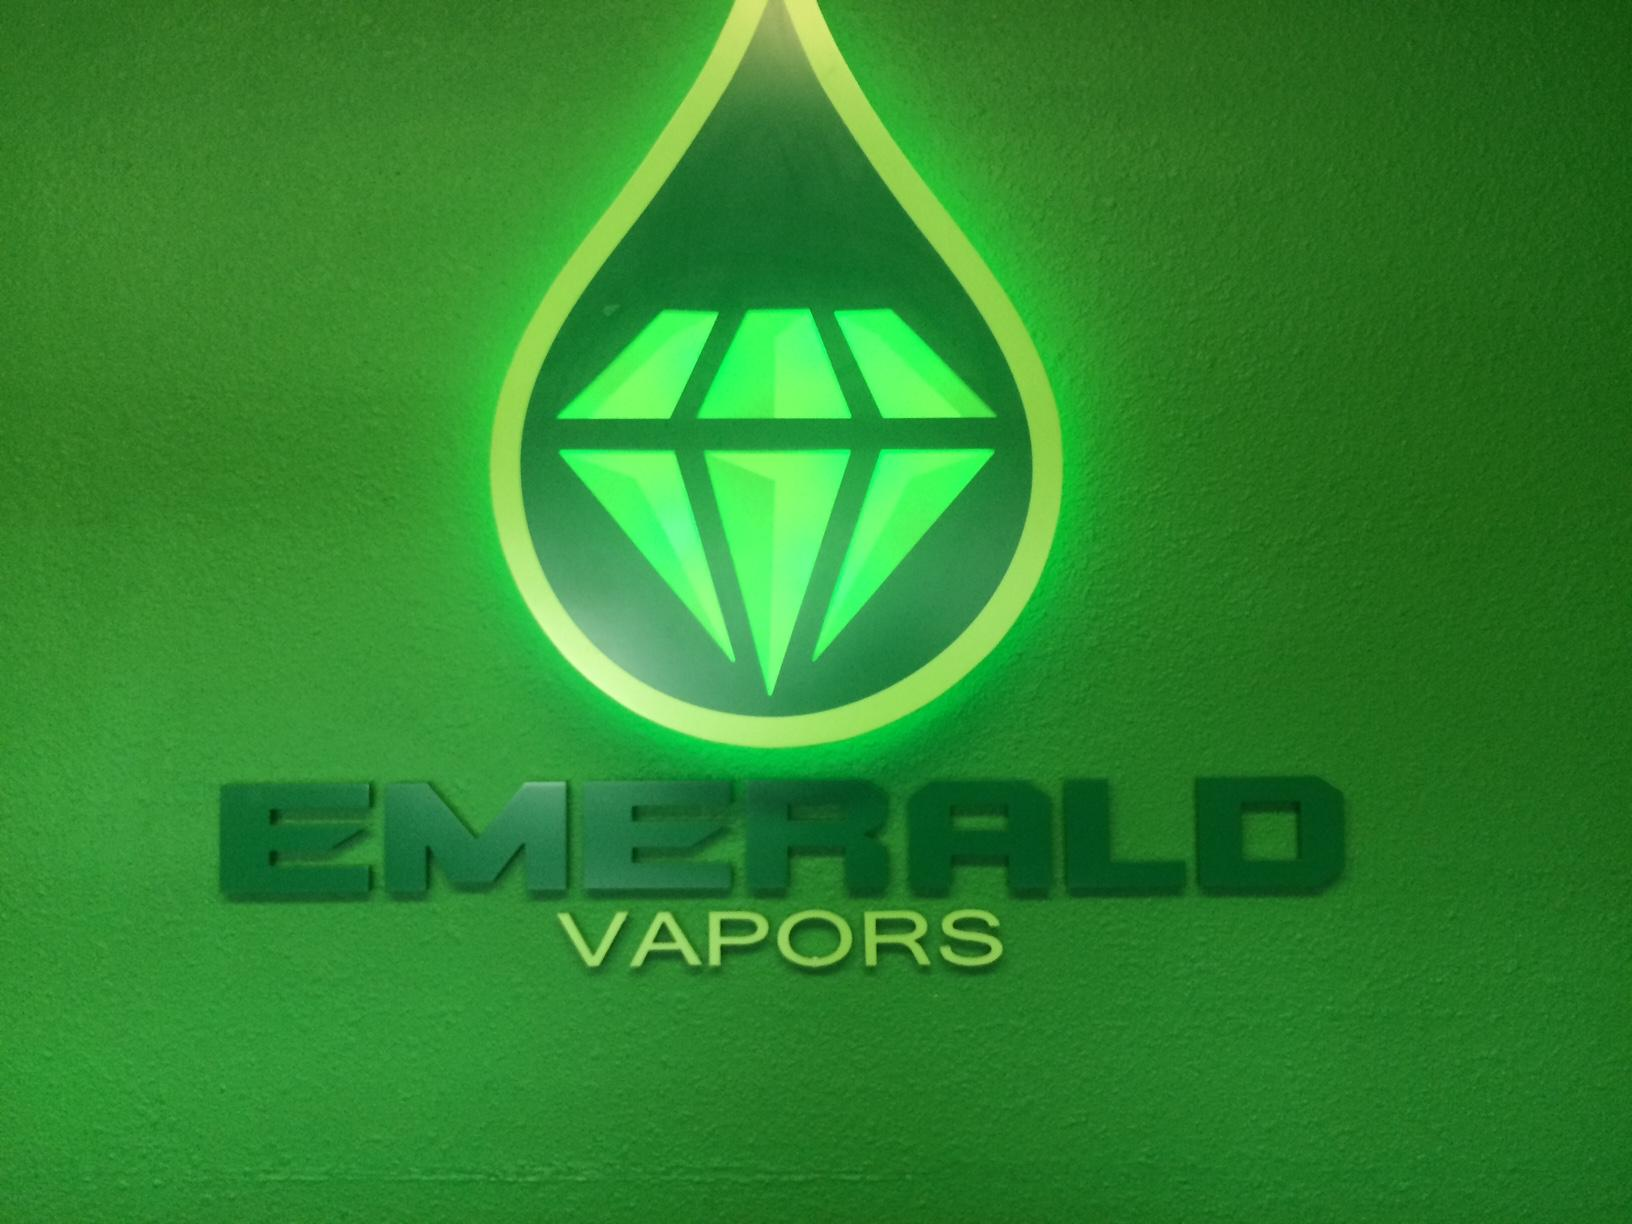 A masked man robbed a store at gunpoint Sunday evening, making off with $1,700 in cash and vaporizer merchandise.Police said the gunman robbed Emerald Vapors, 1262 Lawrence St., just before 8 p.m. (SBG)